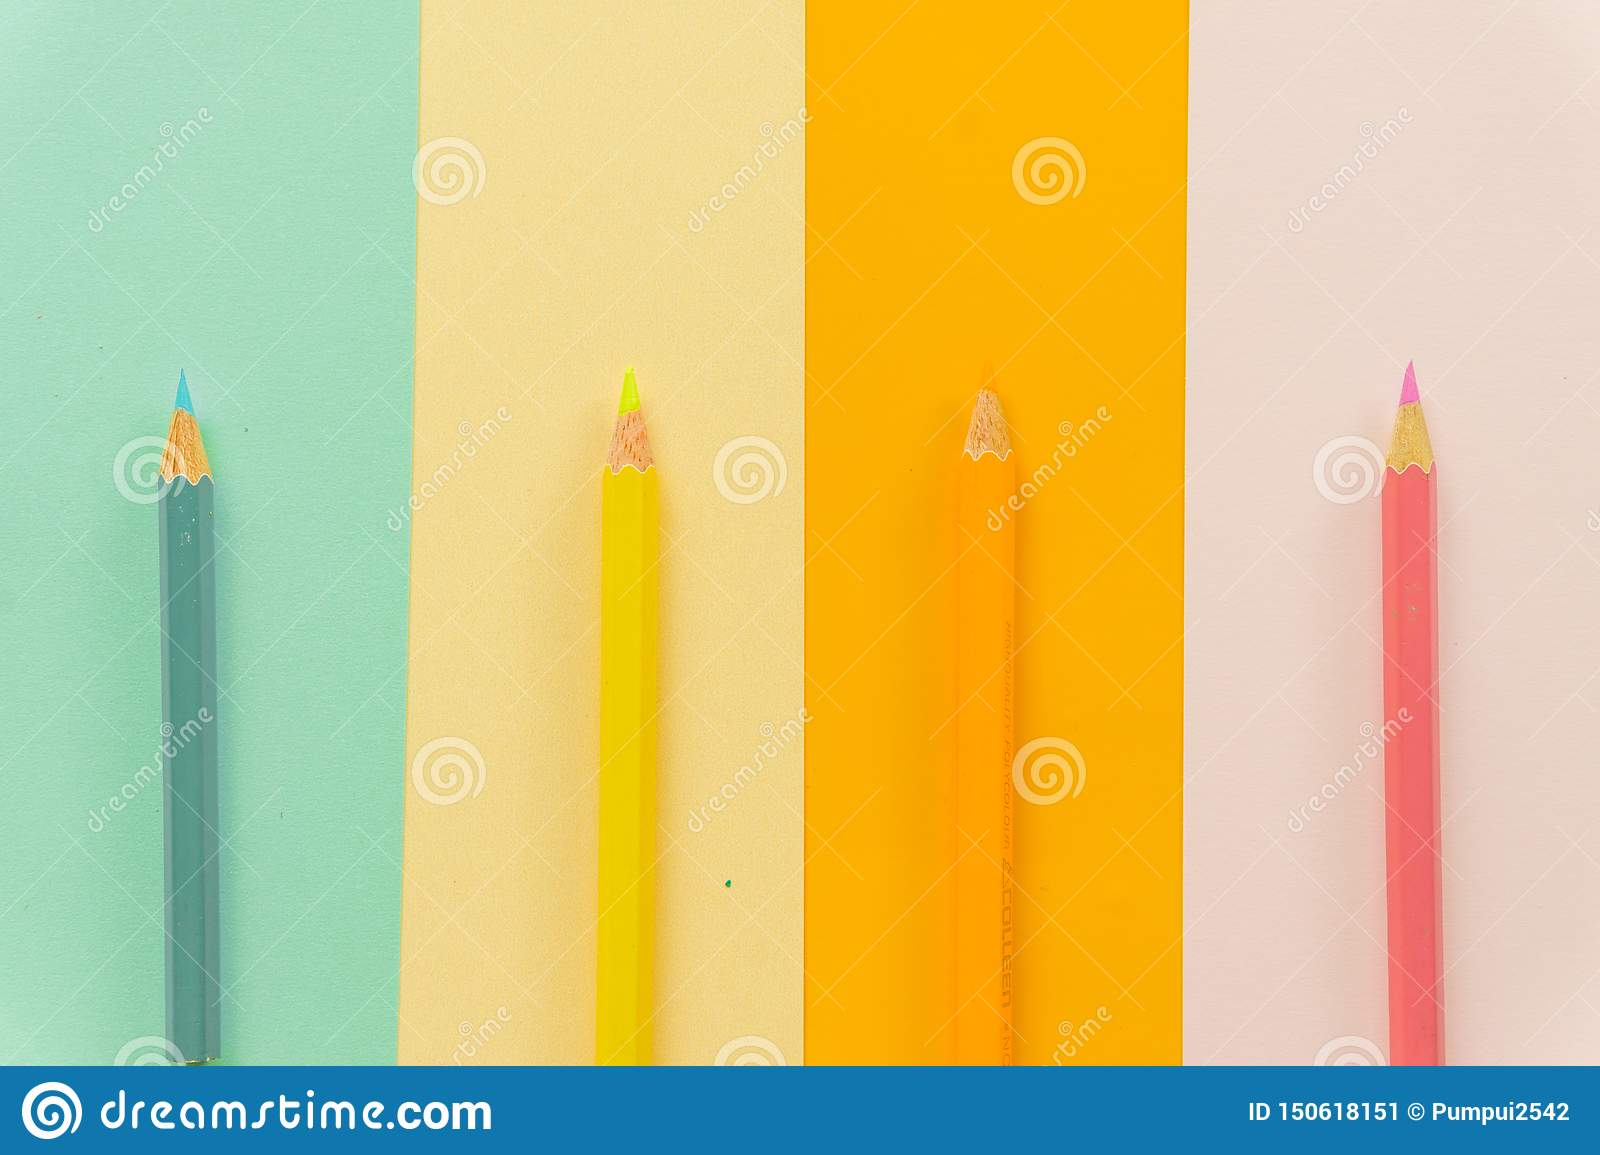 Colored pencils Blue, yellow, orange and pink on Blue, yellow, orange and pink background.